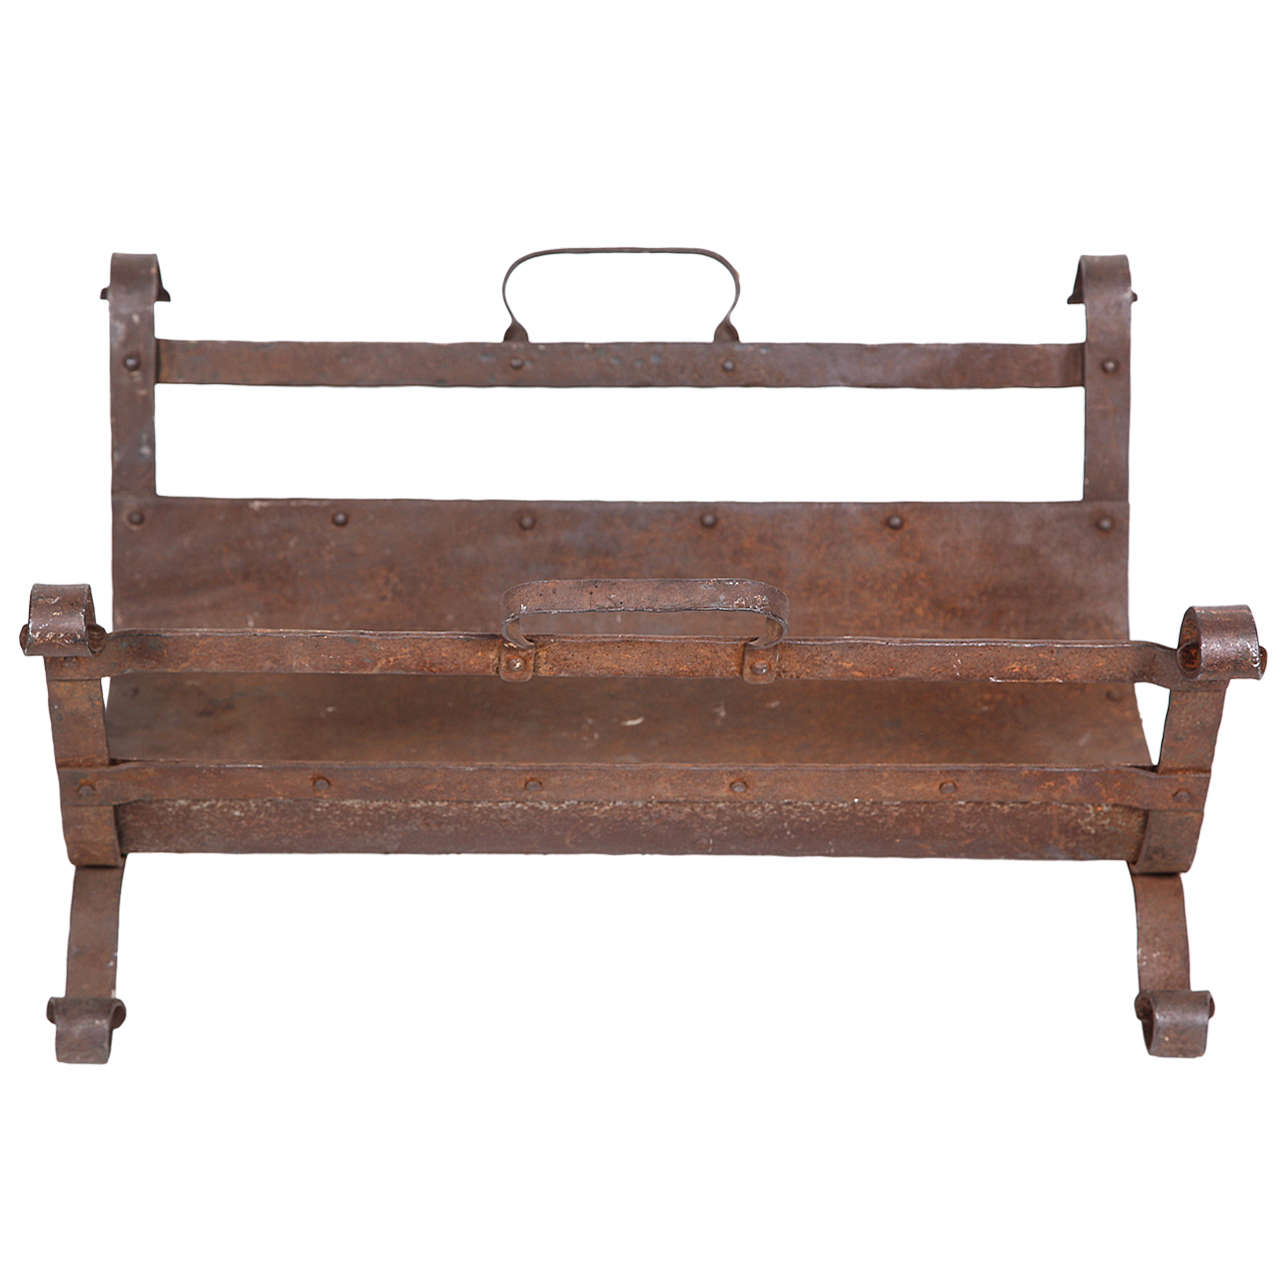 Craftsman Wrought Iron Log Holder with Handles